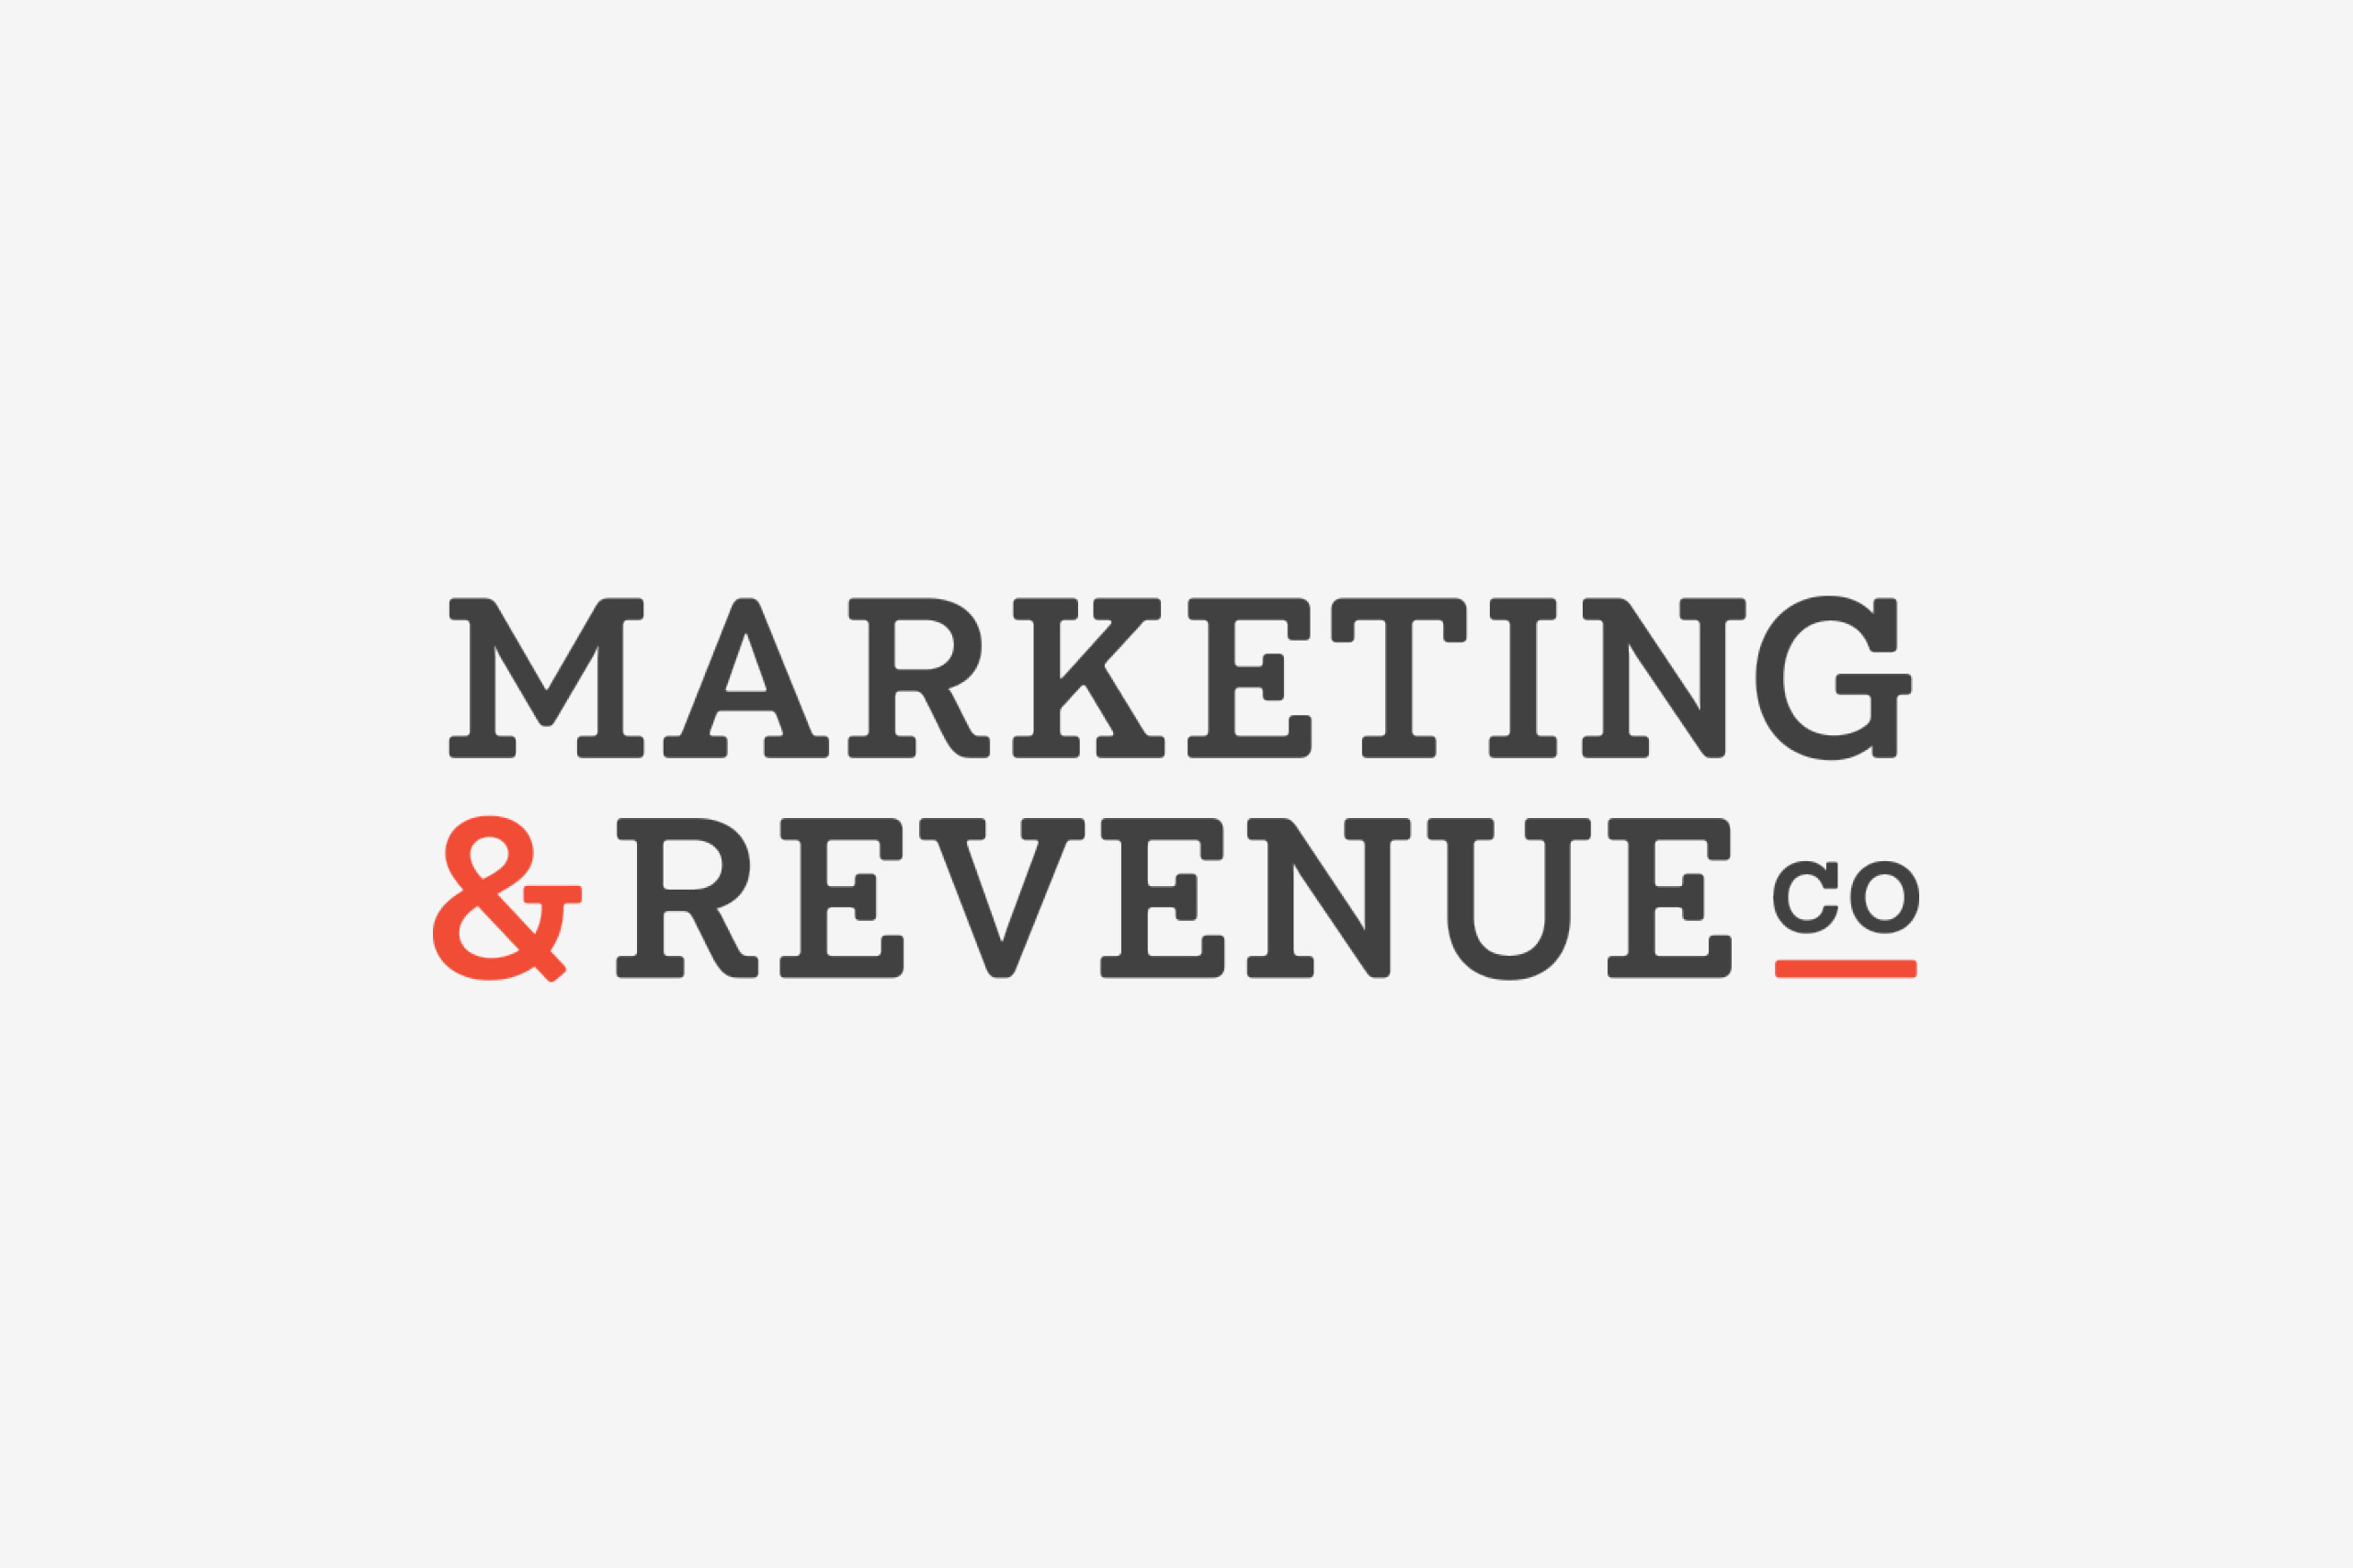 marketing and revenue company brand development maker and co design 1